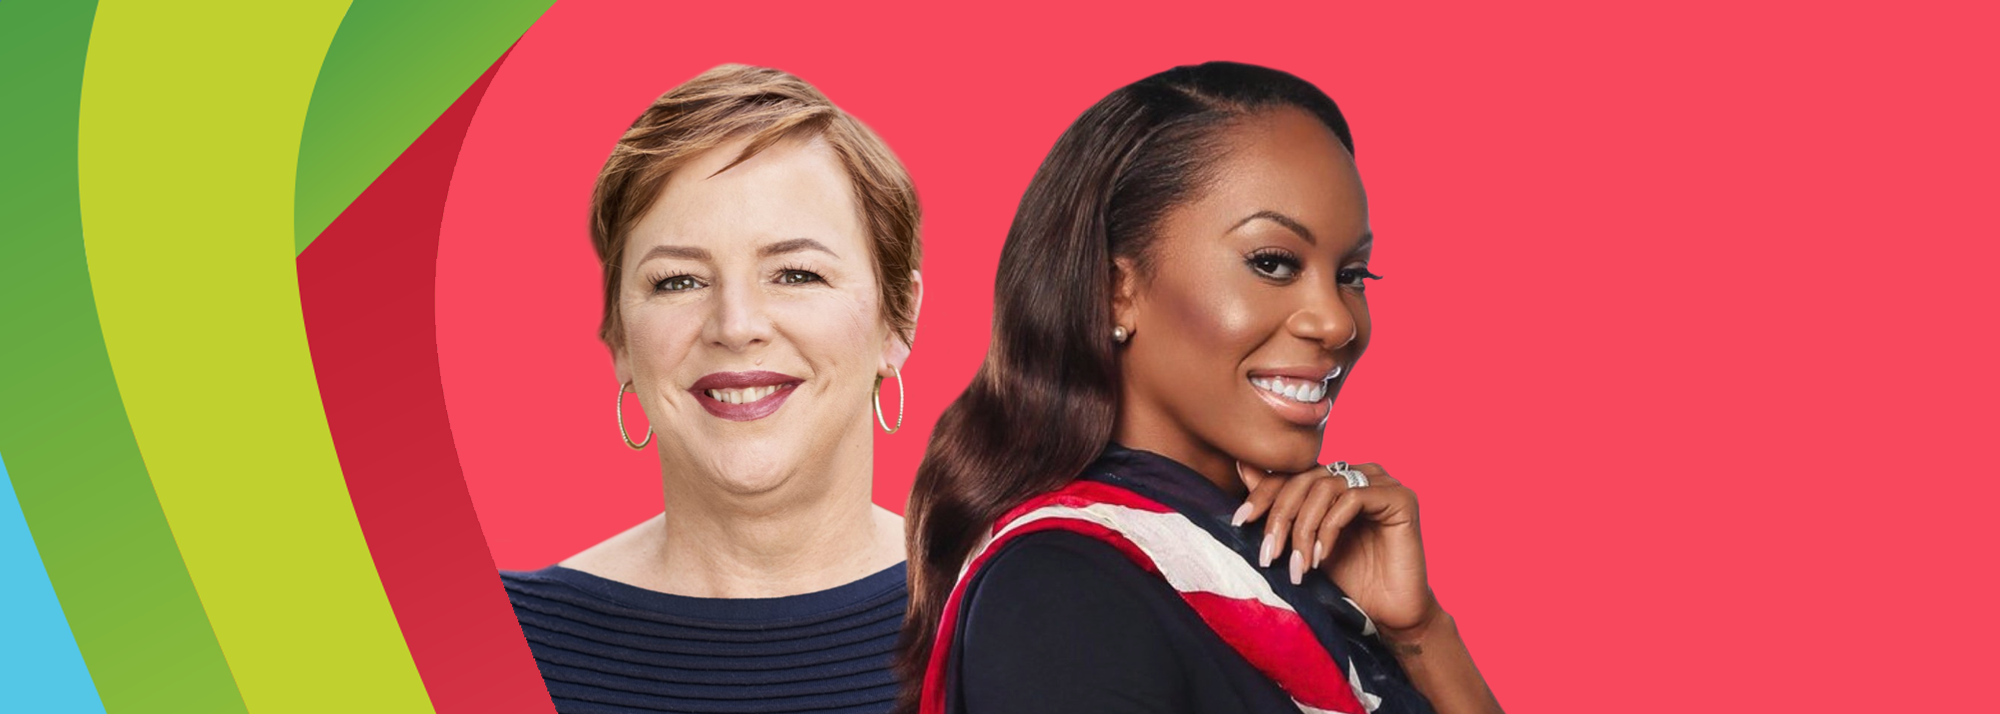 The World Athletics Championships Oregon22 has appointed four-time Olympic gold medalist Sanya Richards-Ross and sports industry leader and marketing expert Liz Dolan to its board of directors.